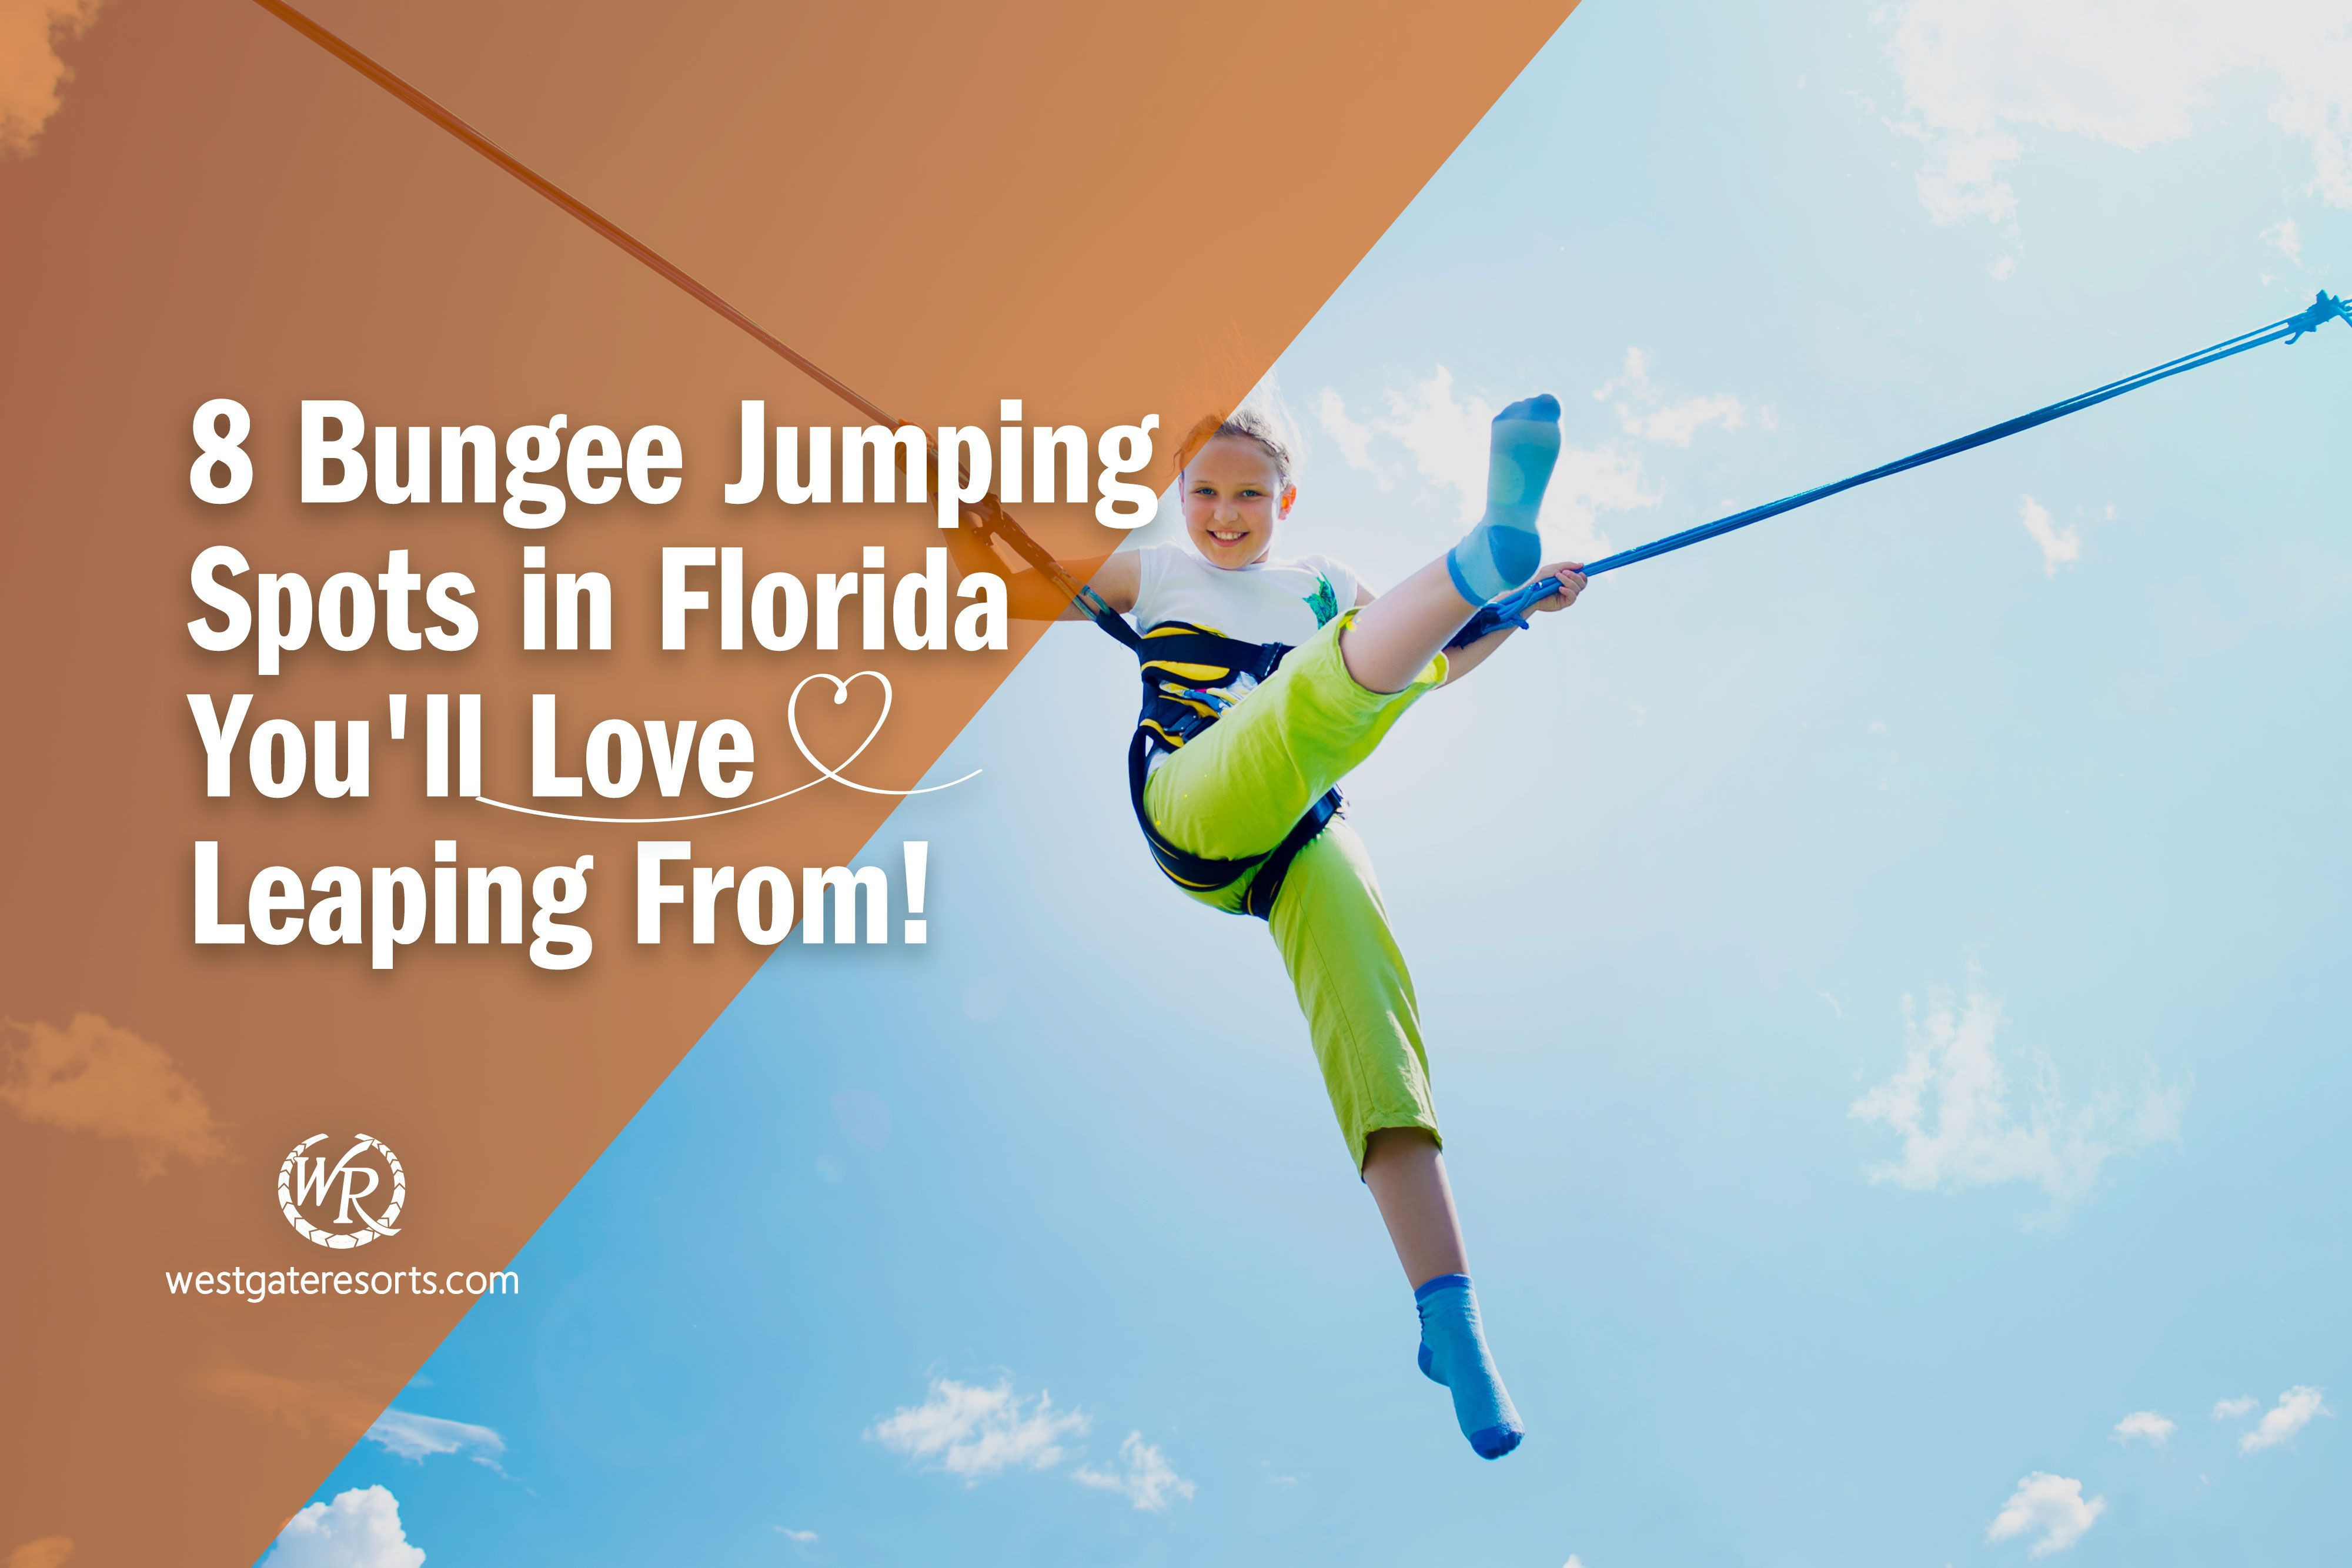 8 Bungee Jumping Spots in Florida You'll Love Leaping From!